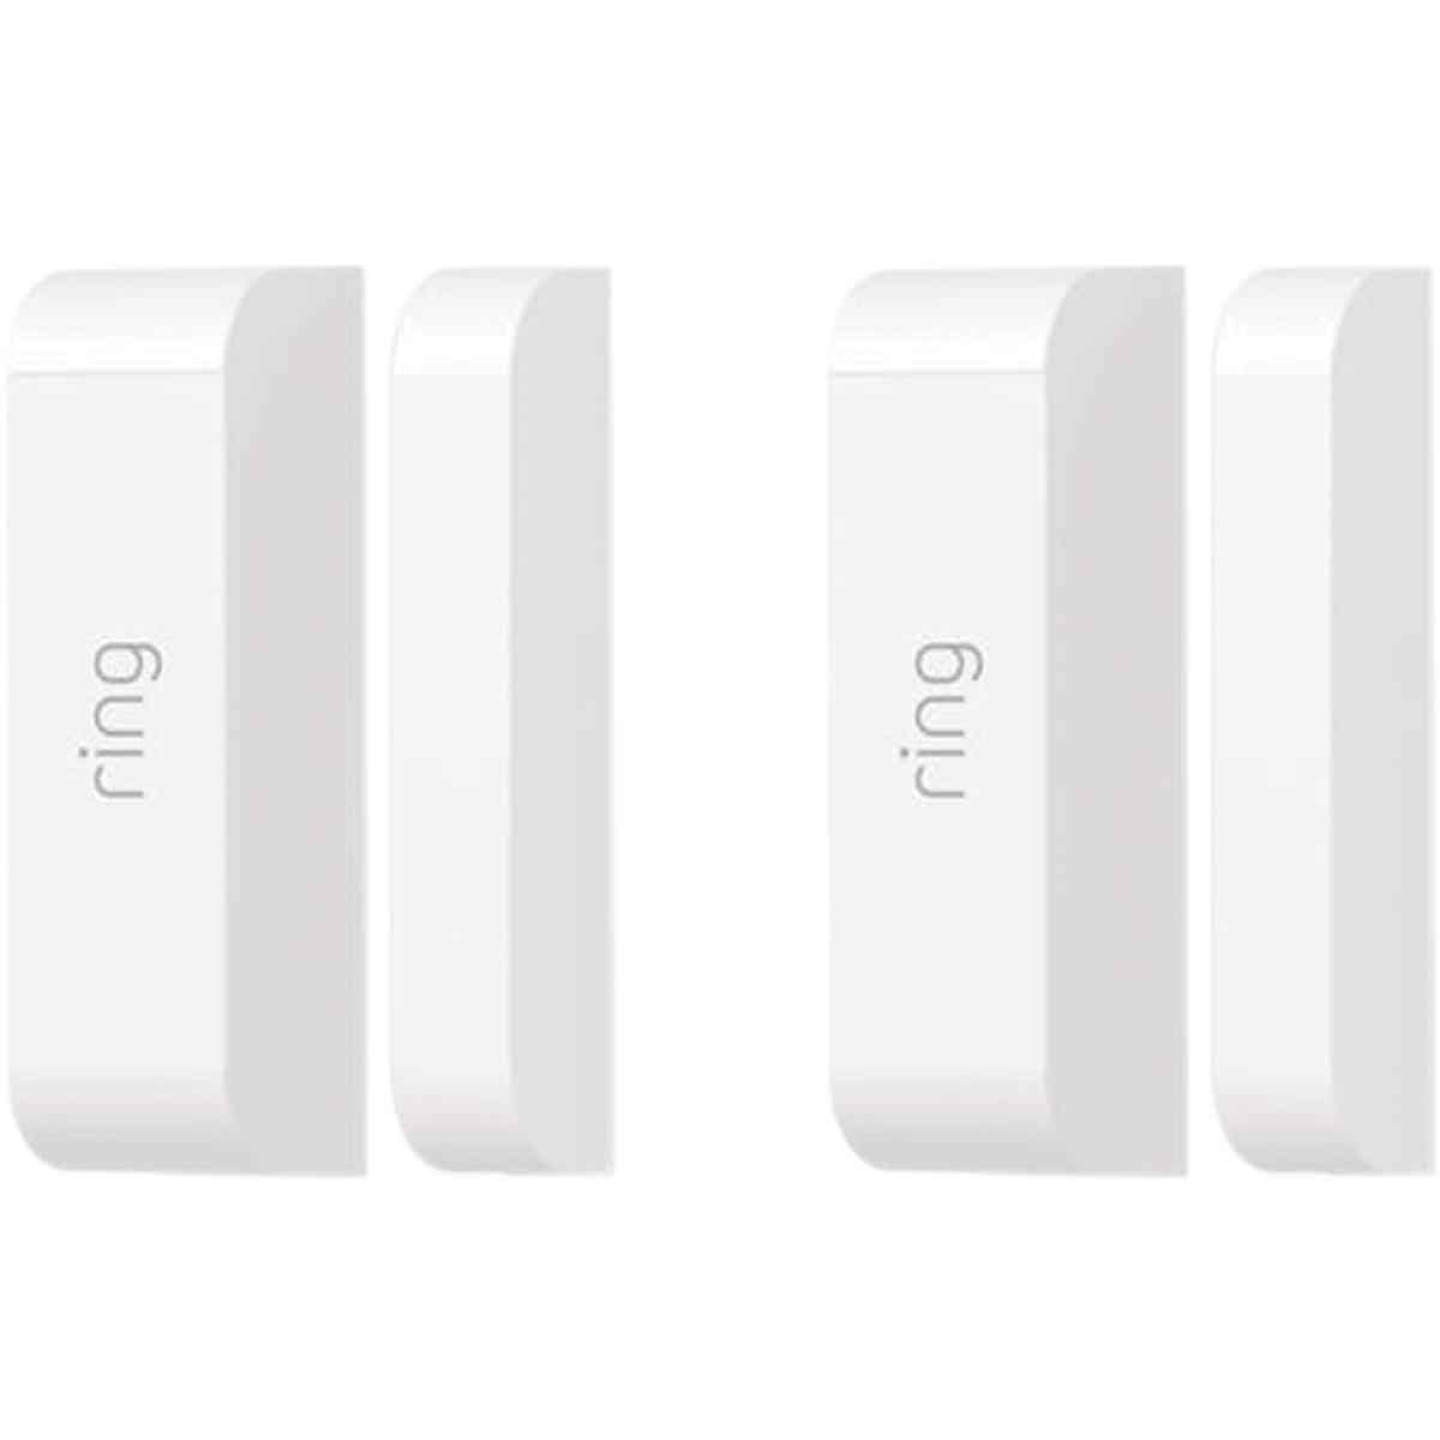 Ring Wireless Indoor White Alarm Contact Sensor (2-Pack) Image 1